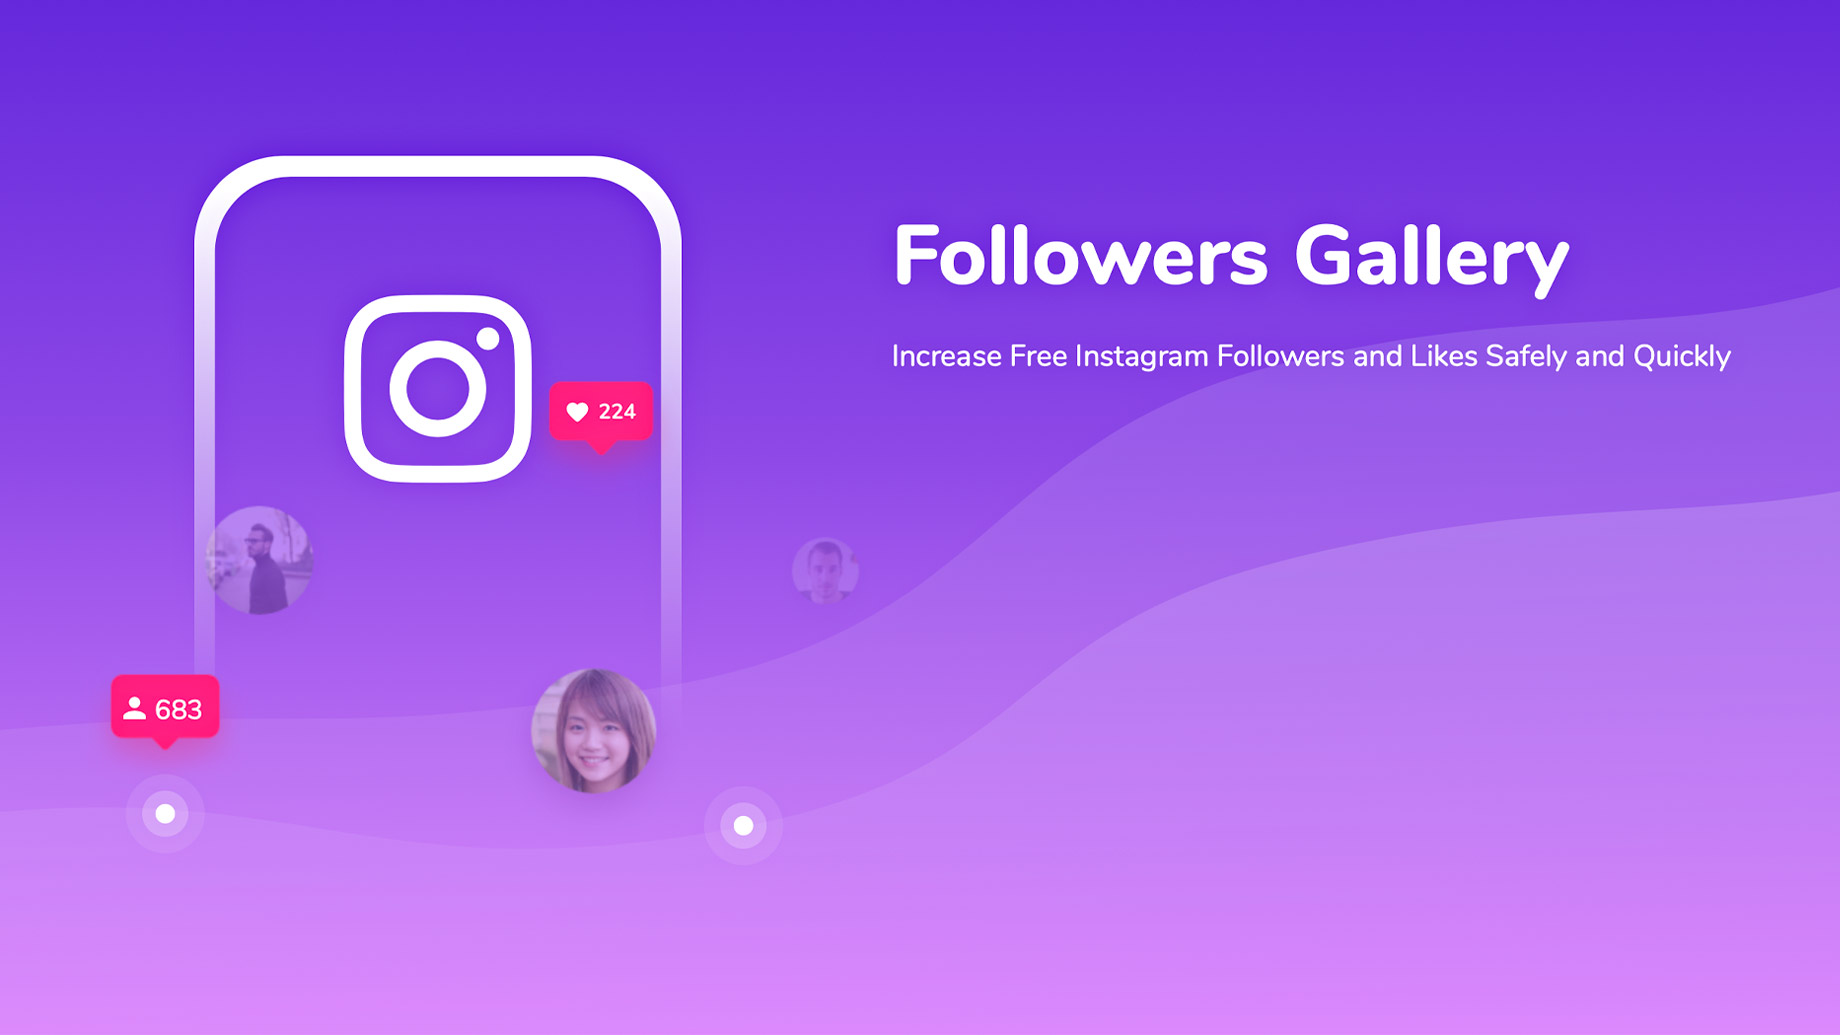 Followers Gallery - Increase Free Instagram Followers and Likes Safely and Quickly